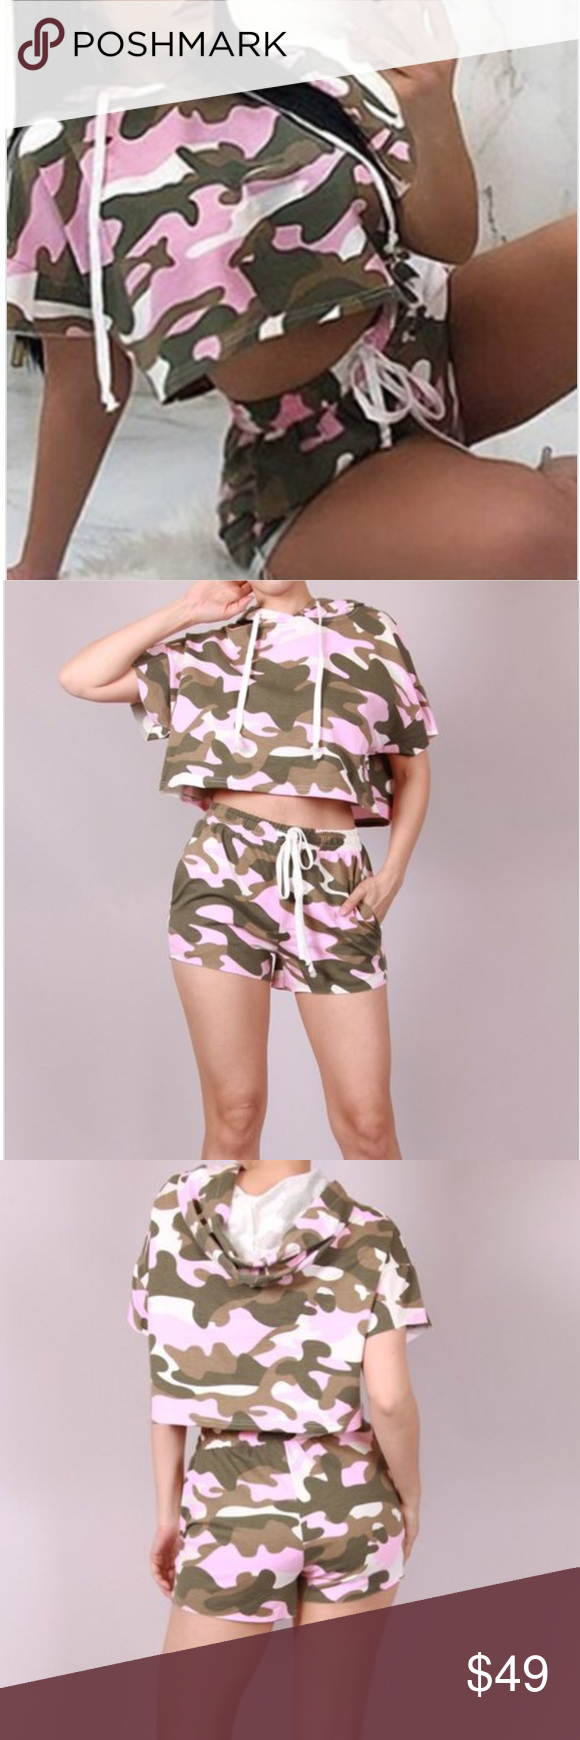 3fb56635374b6 2 piece set Pink camo crop/shorts. 2 piece sets pink Camo crop top & shorts  . How cute is this !! High rise Shorts has functional pockets and raw hem.